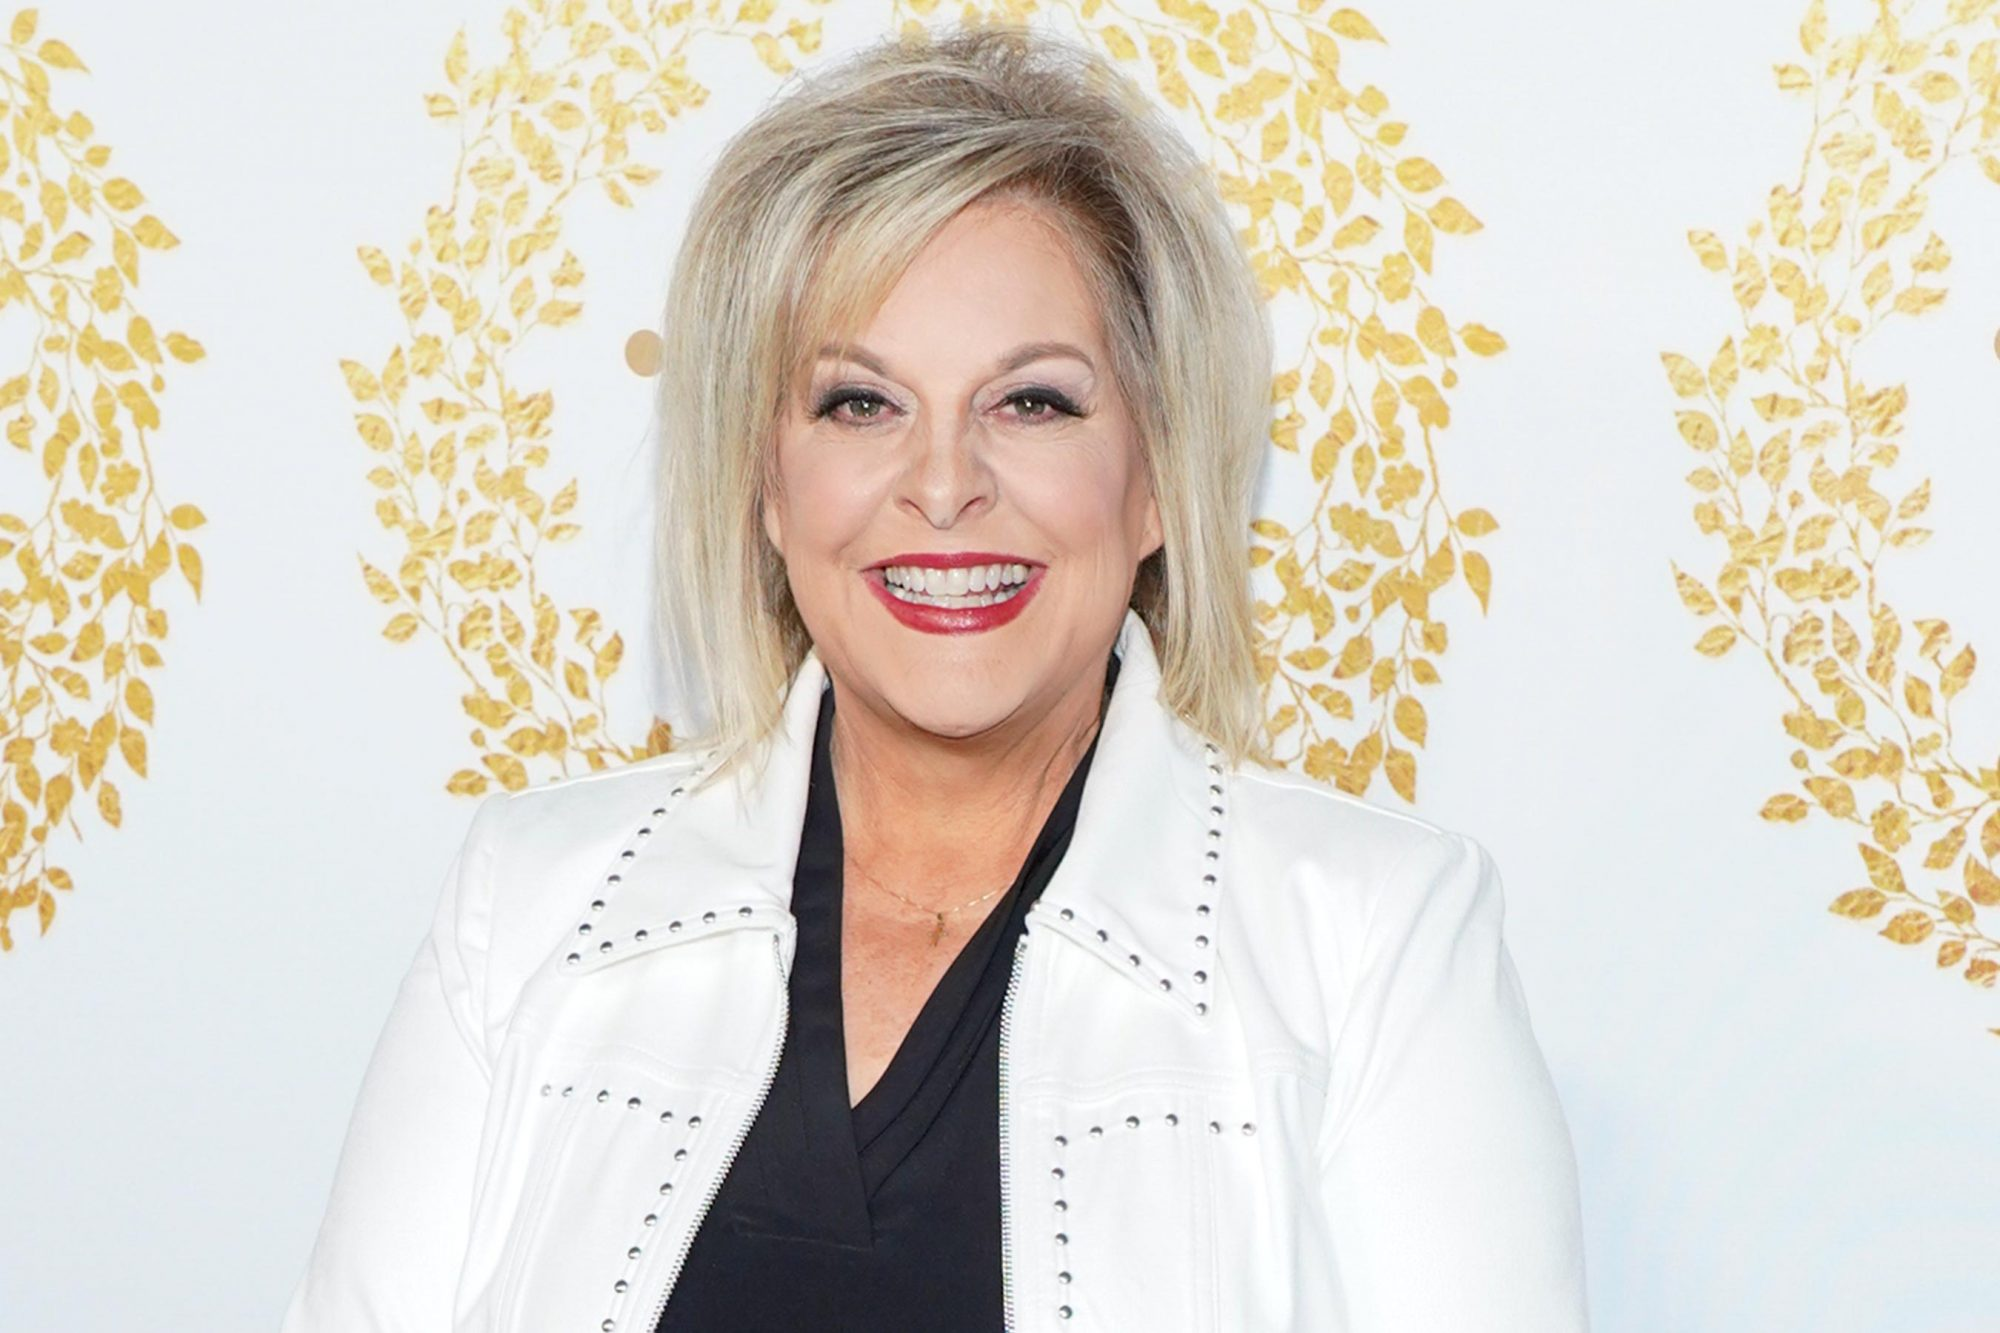 PASADENA, CALIFORNIA - FEBRUARY 09: Nancy Grace attends Hallmark Channel And Hallmark Movies And Mysteries 2019 Winter TCA Tour at Tournament House on February 09, 2019 in Pasadena, California. (Photo by Rachel Luna/Getty Images)